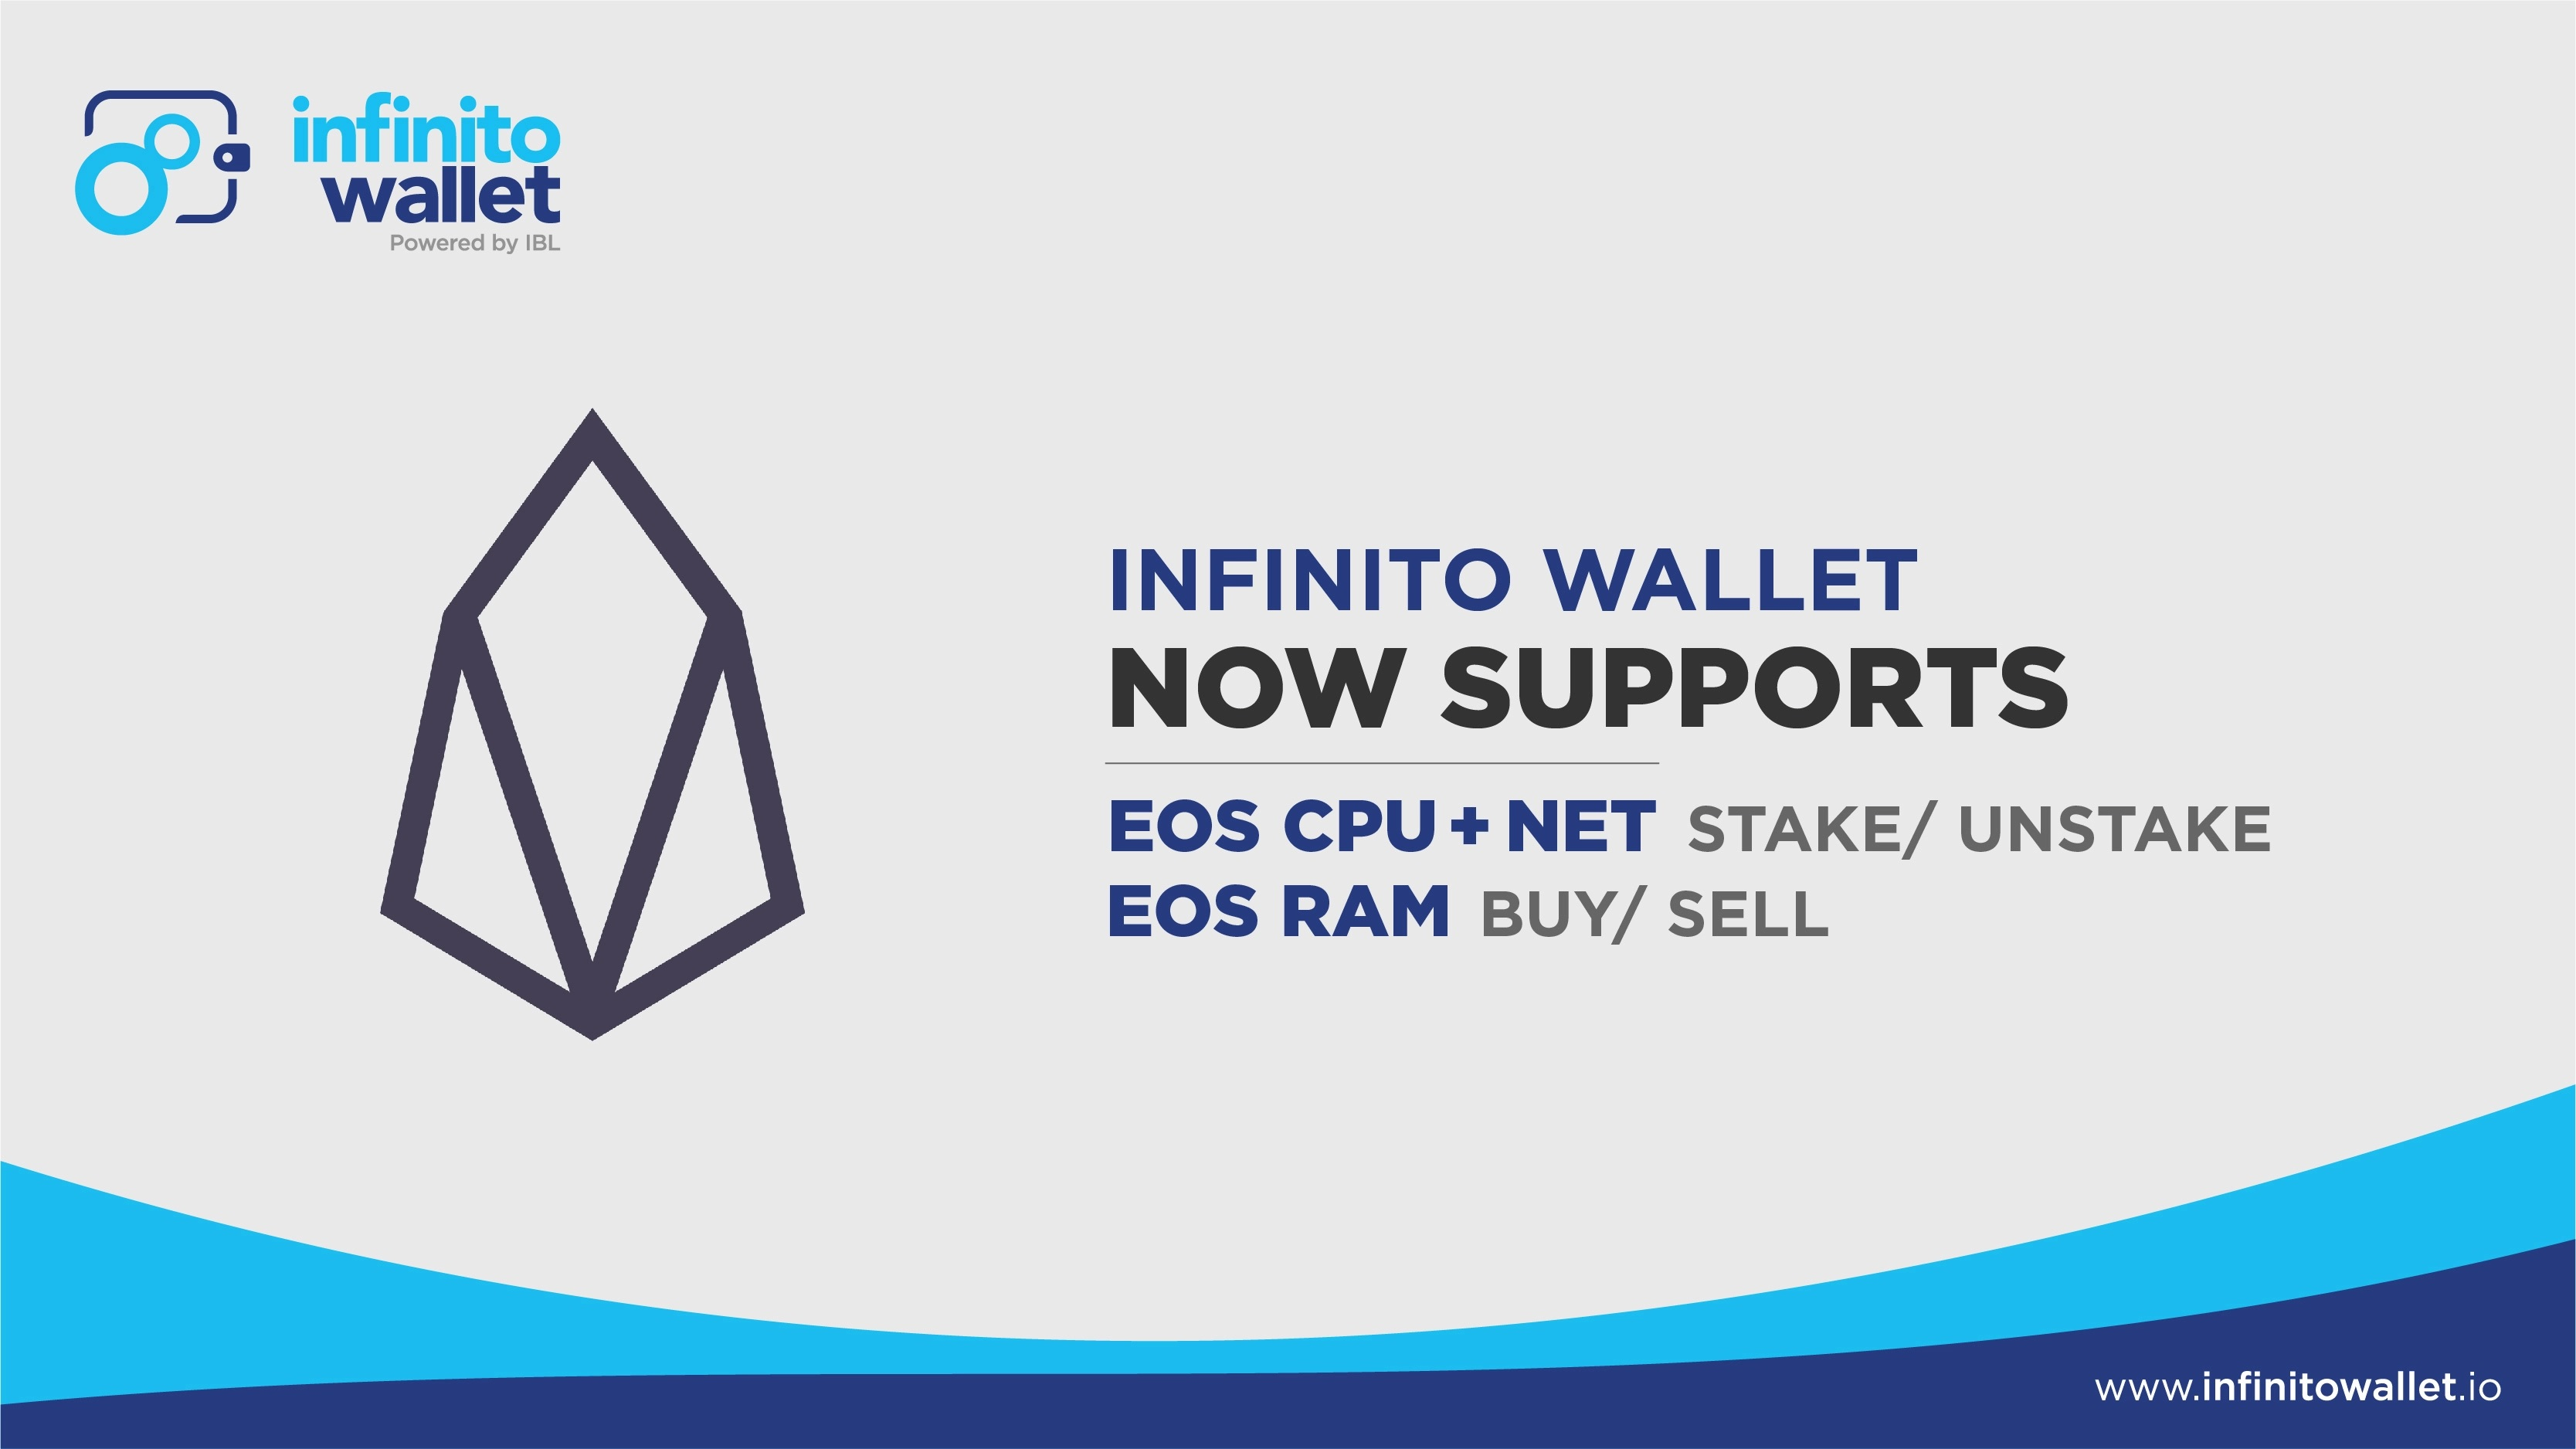 EOS Holders: You Can Now Buy/Sell RAM and Stake/Unstake NET and CPU